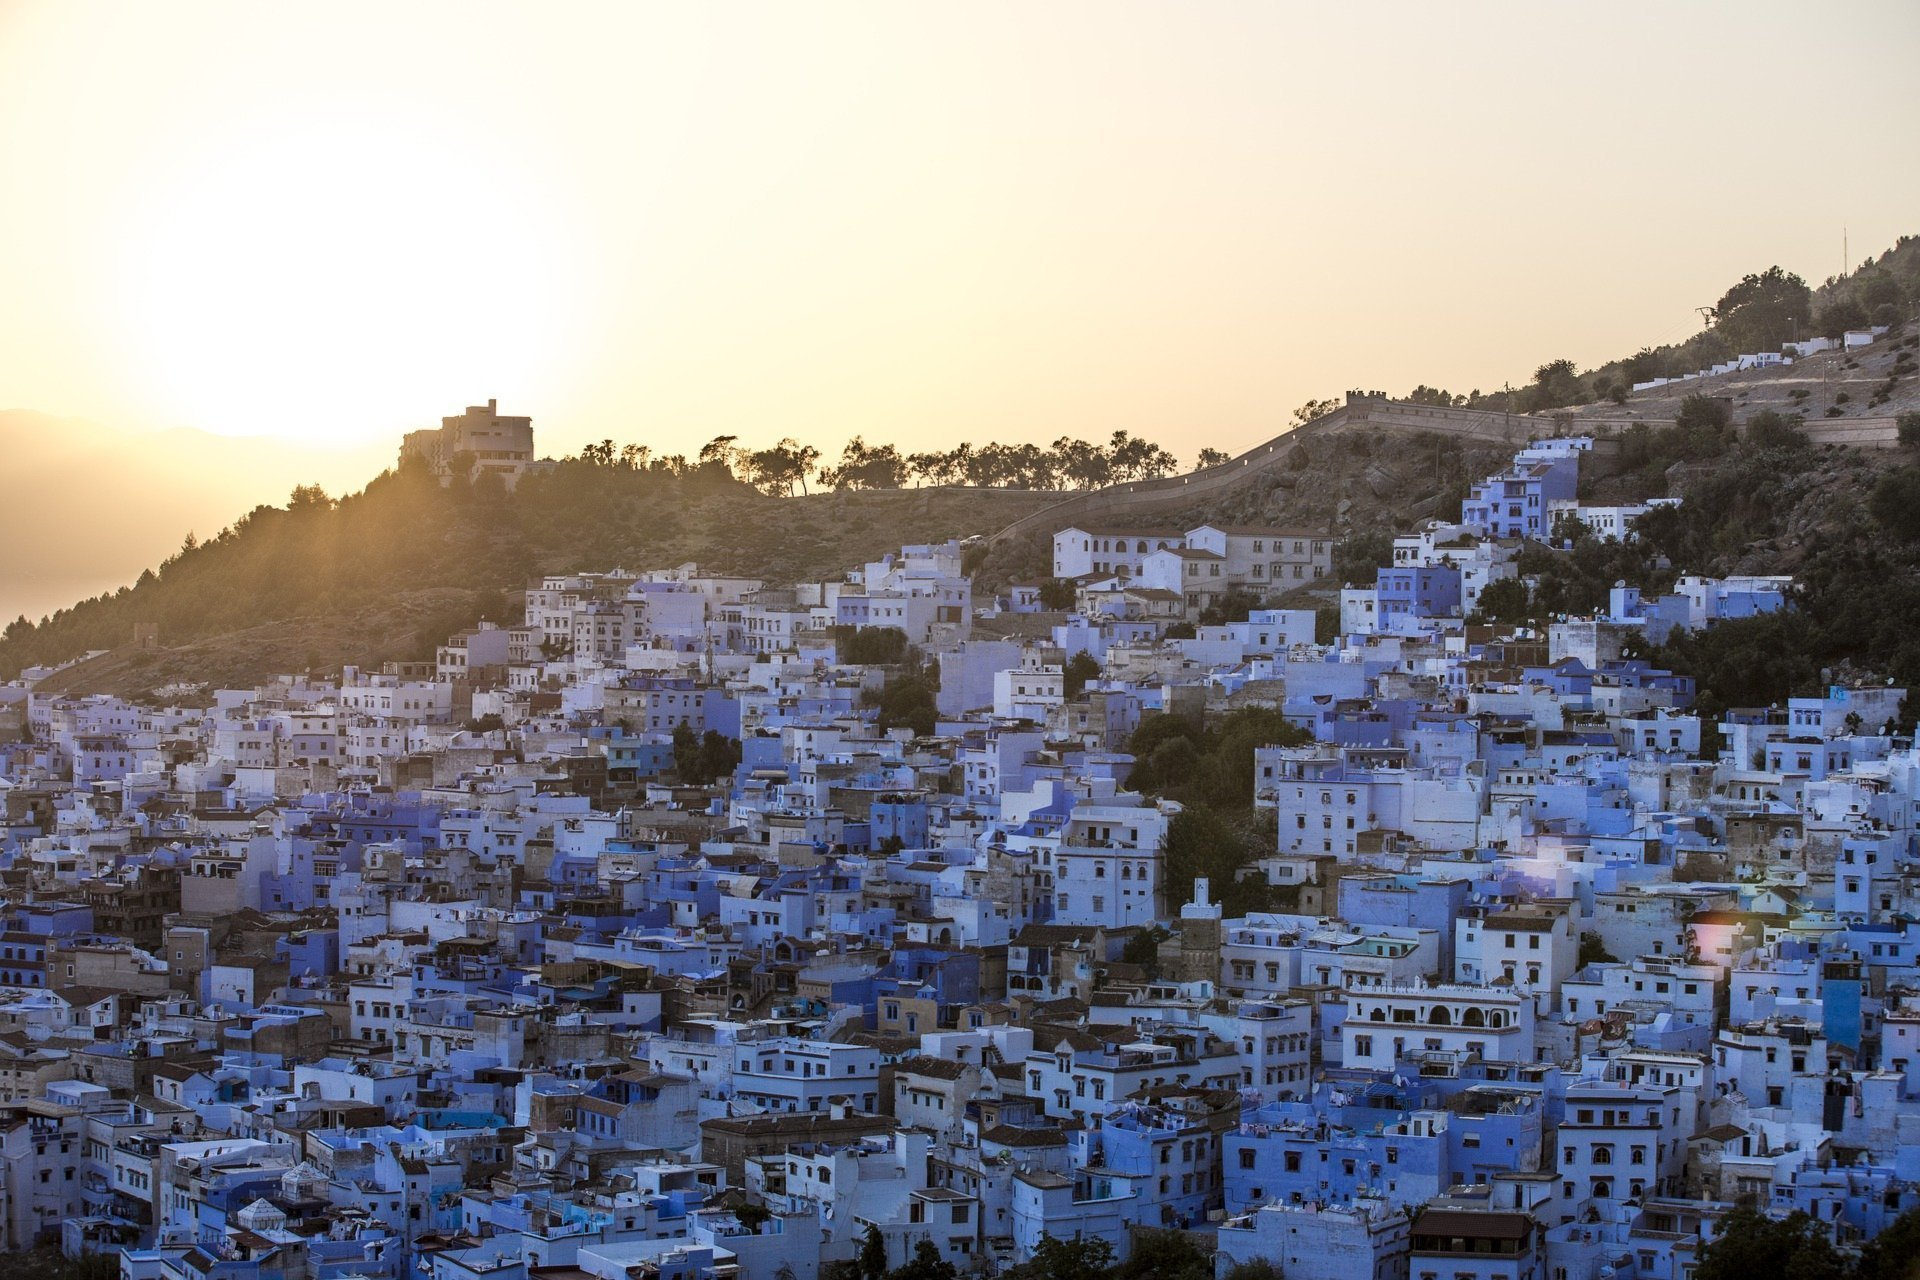 6-Day Ancient Capitals and the Blue City - Morocco Itinerary